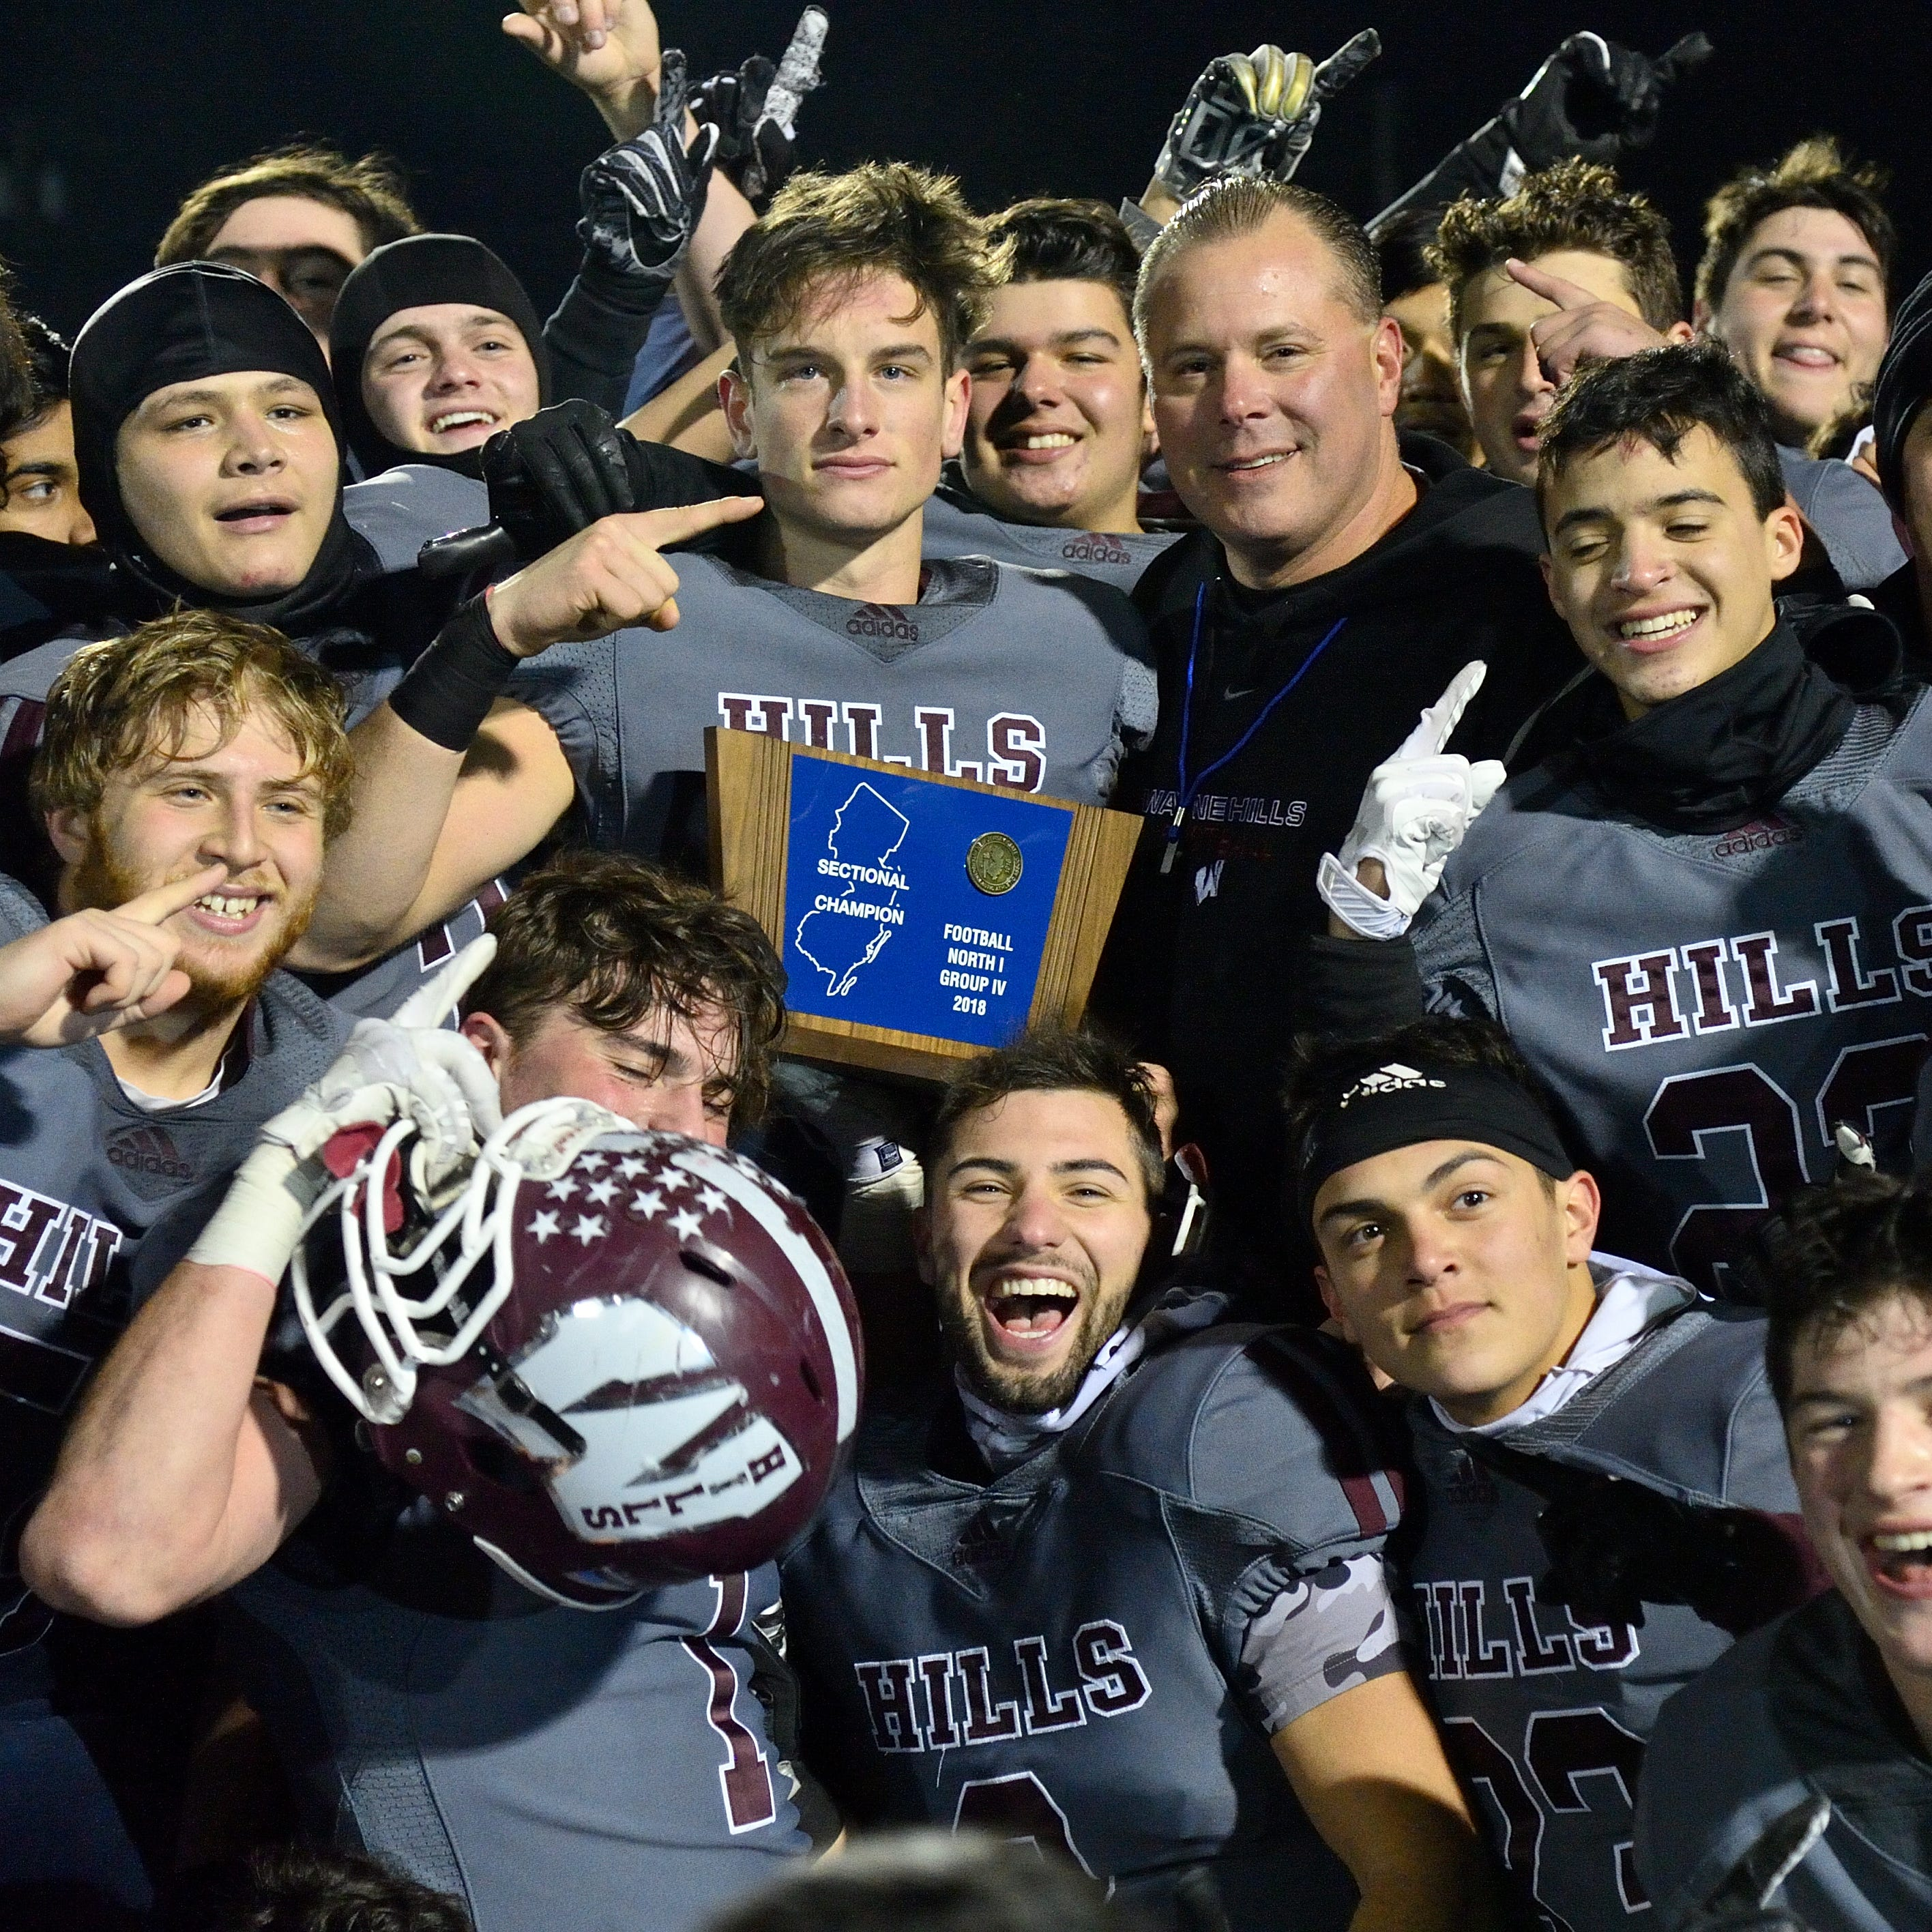 Wayne Hills football overcomes early deficit, edges NV/Old Tappan for sectional title